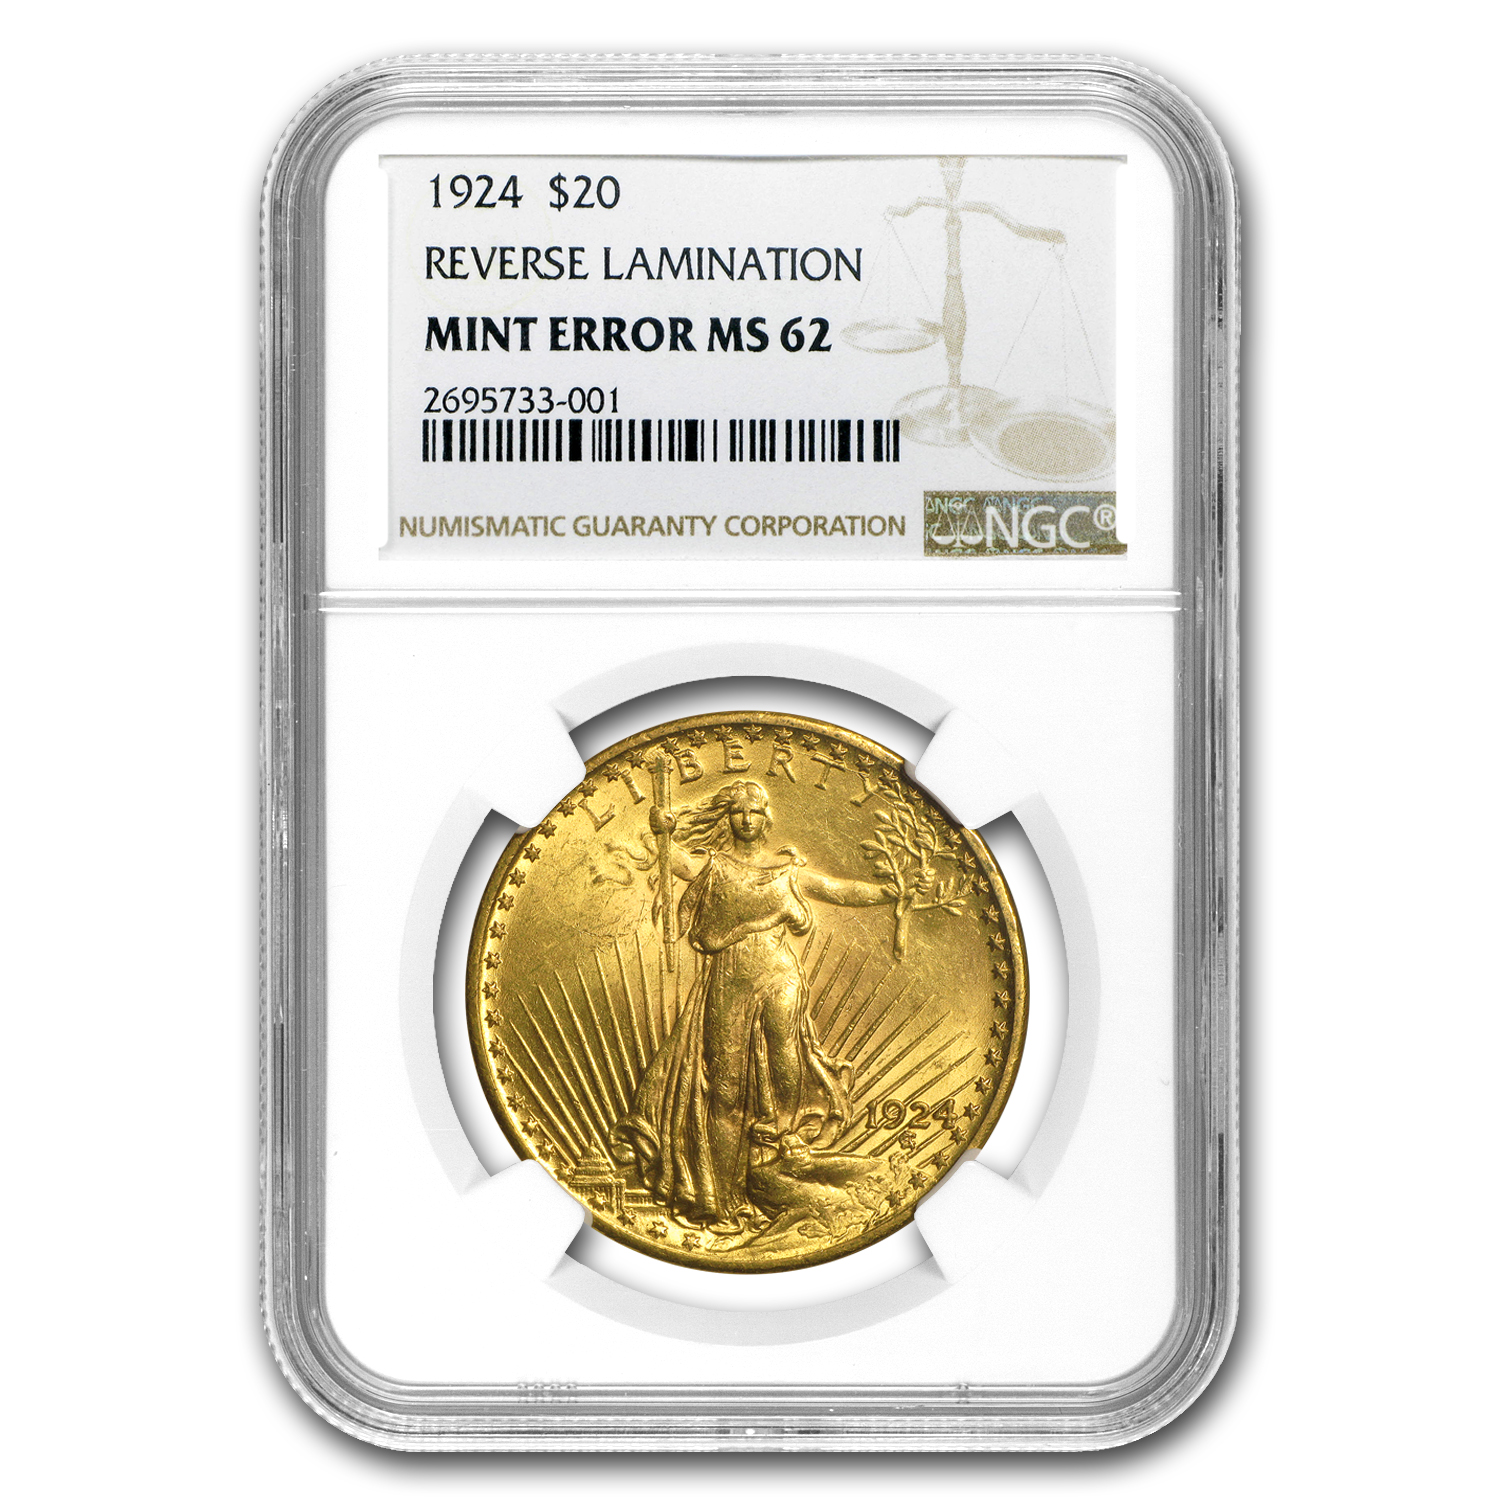 1924 $20 St. Gaudens Gold Double Eagle MS-62 NGC (Strike Thru)